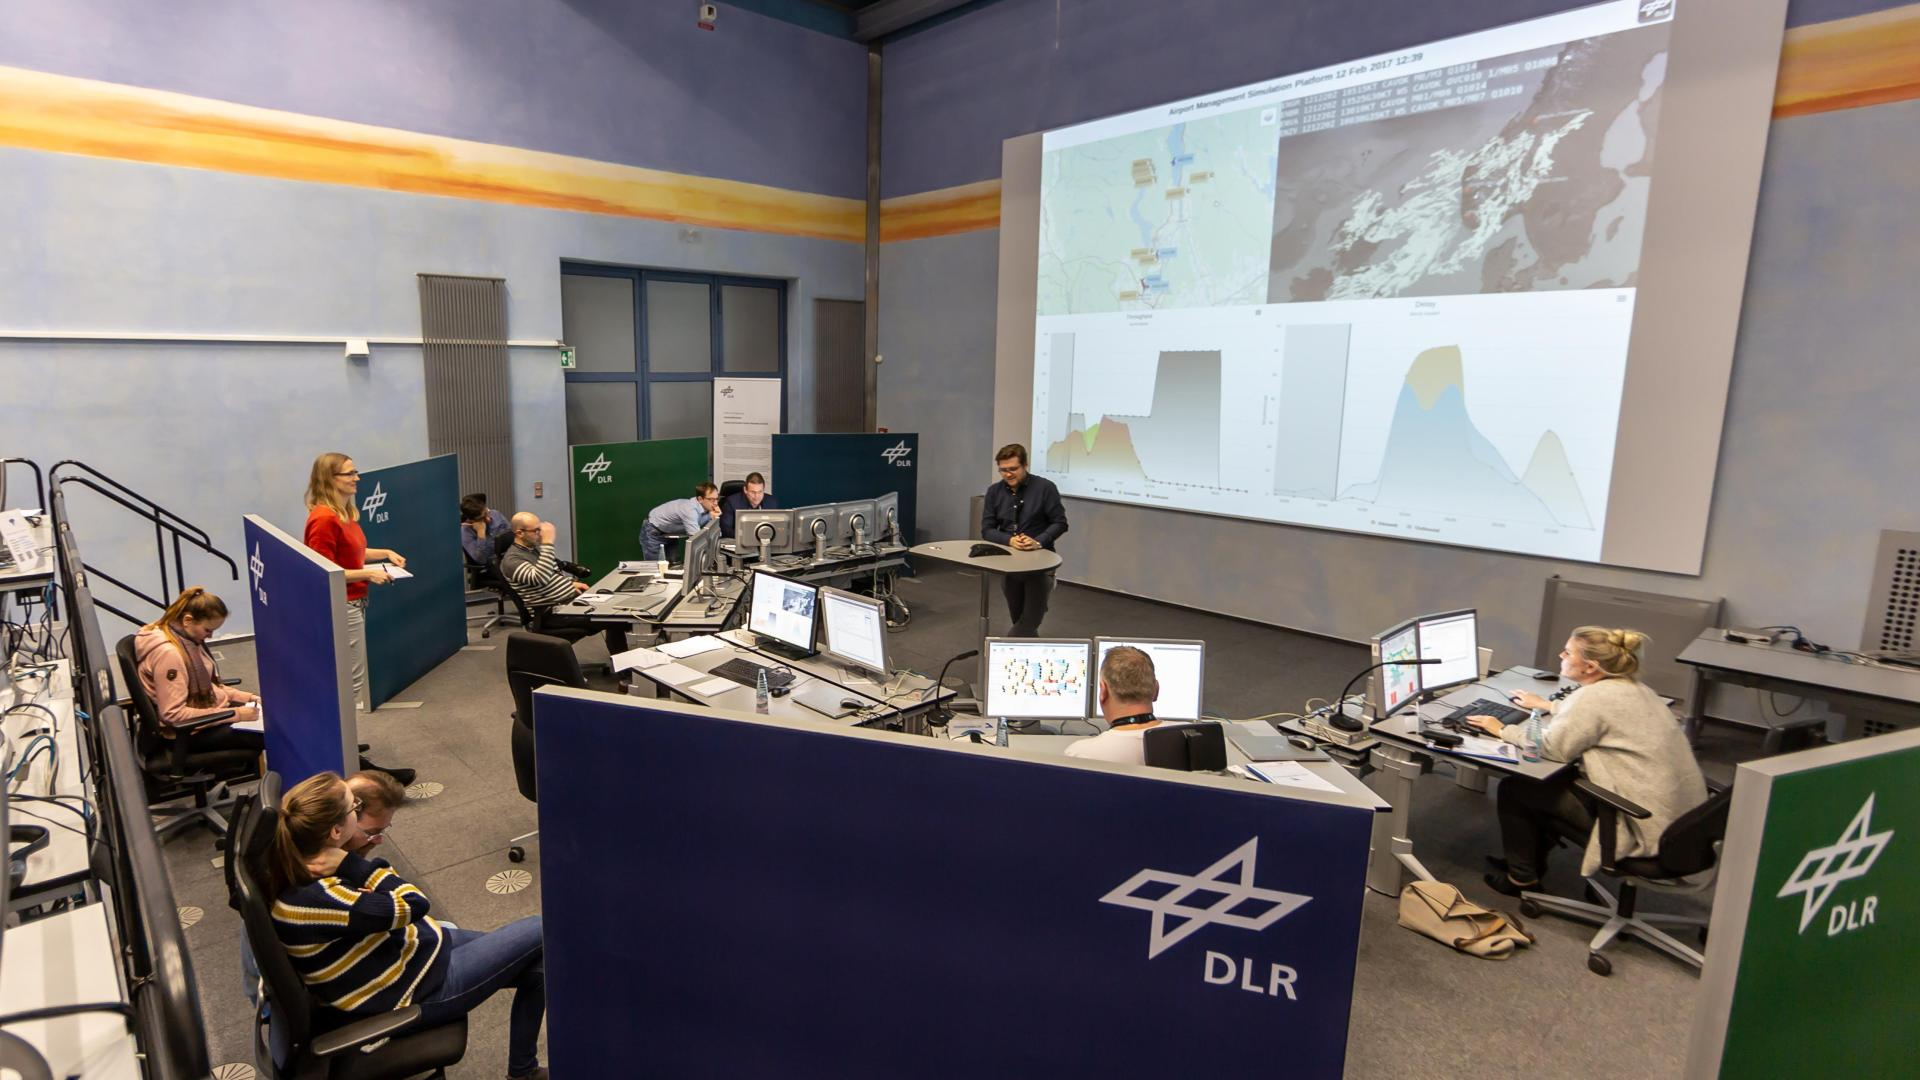 DLR Airport and Control Center Simulator